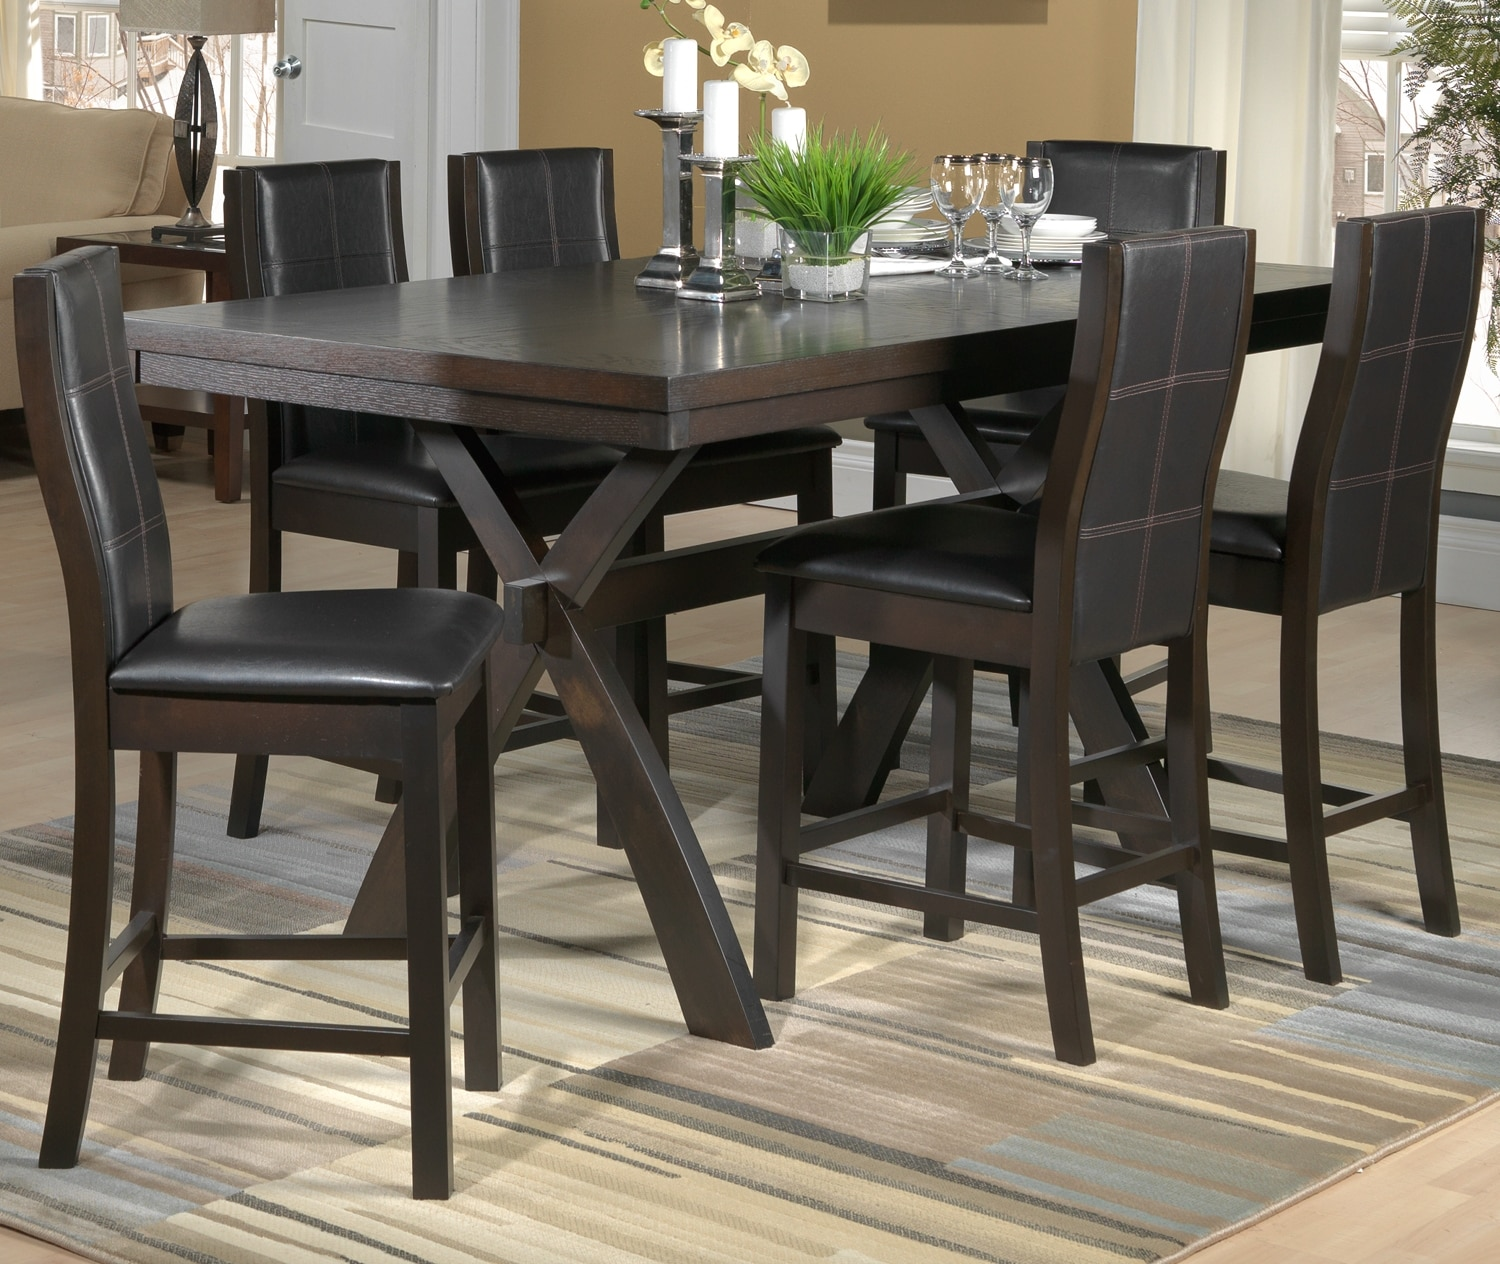 Grethell 7-Piece Pub-Height Dining Room Set - Espresso